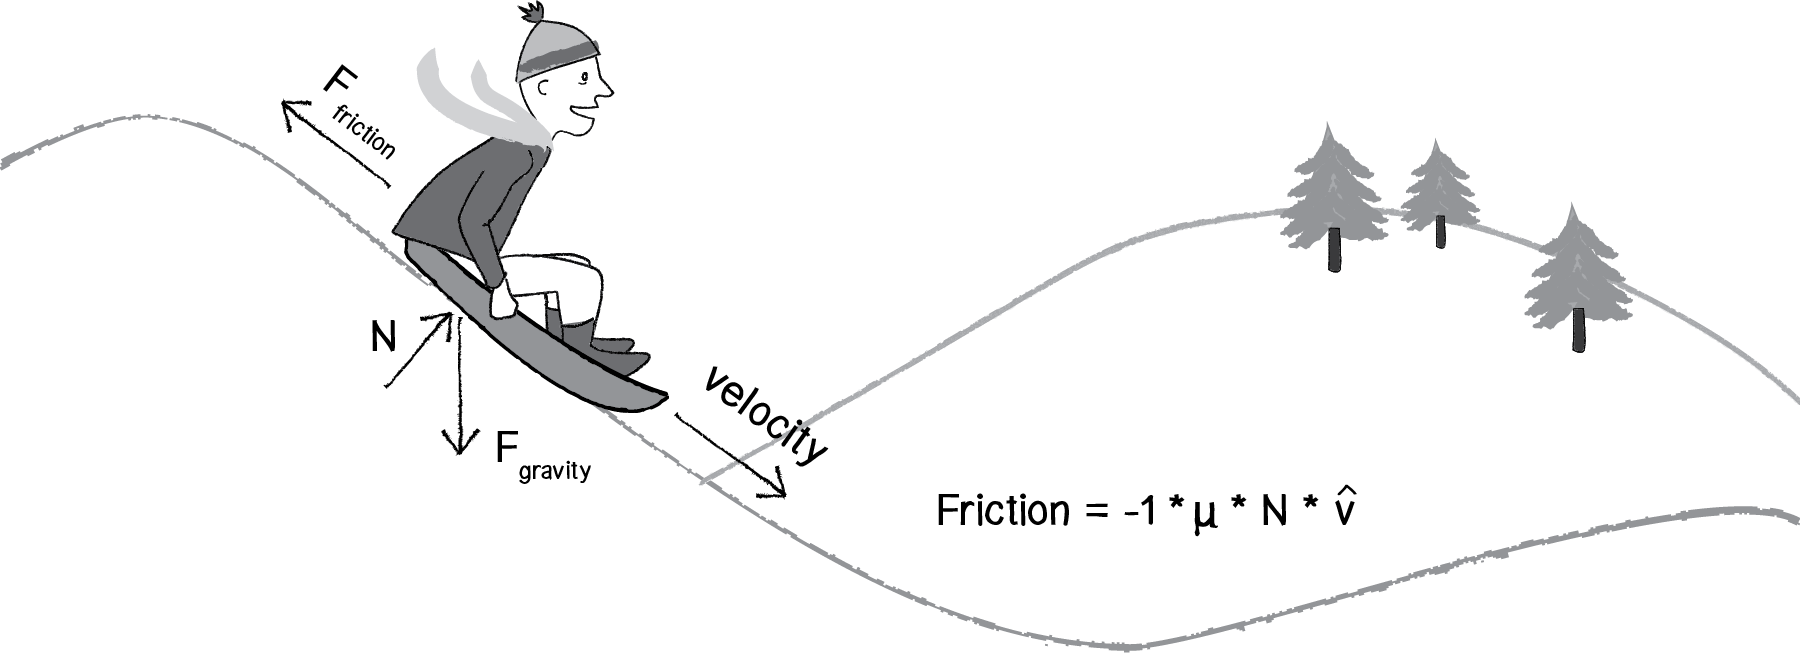 Modeling gravity and friction (article) | Khan Academy